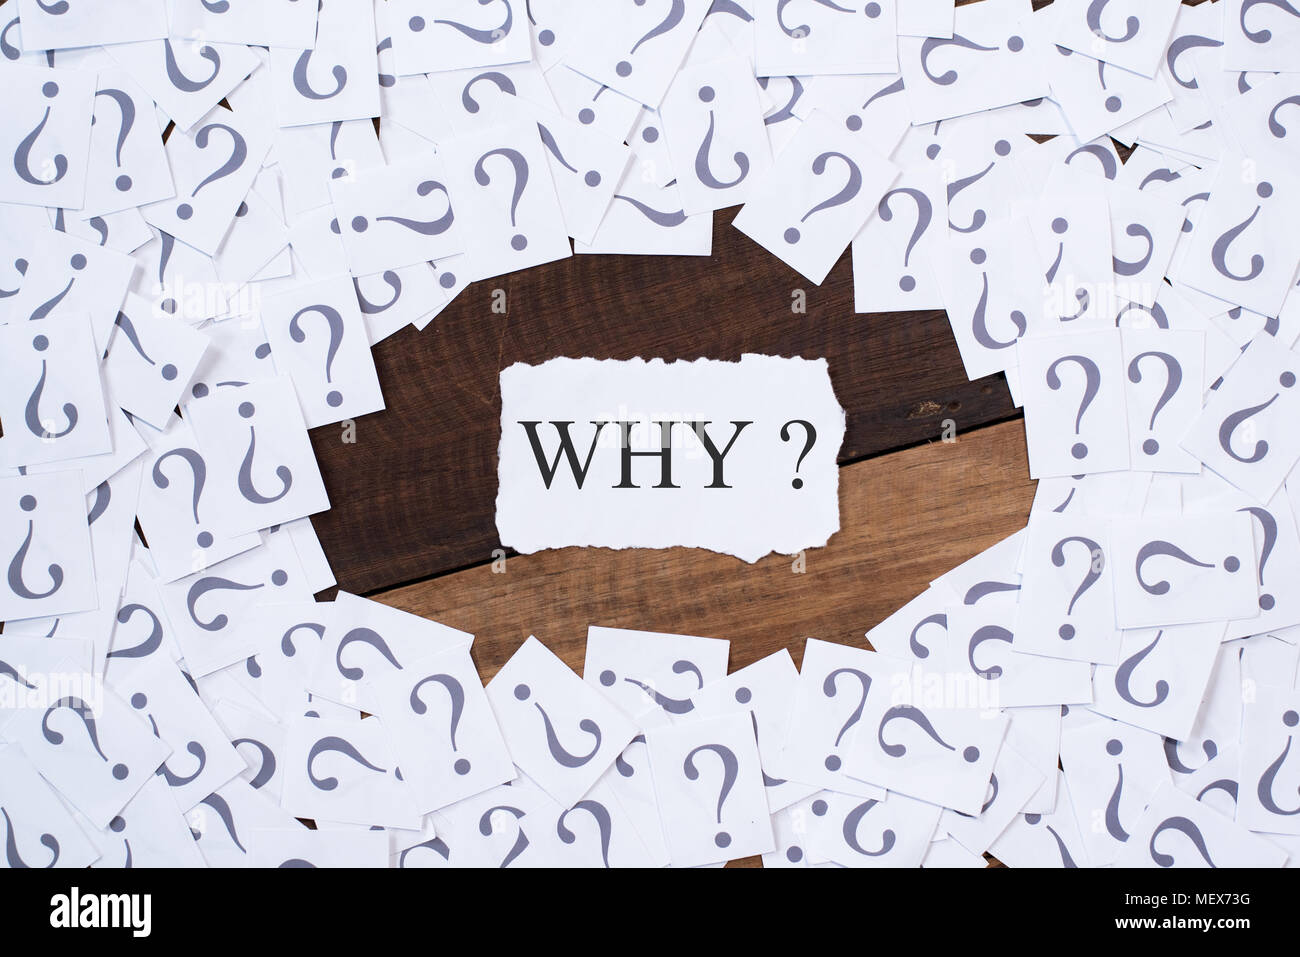 white paper note with question mark and word WHY in the center on wooden table. why concept background - Stock Image